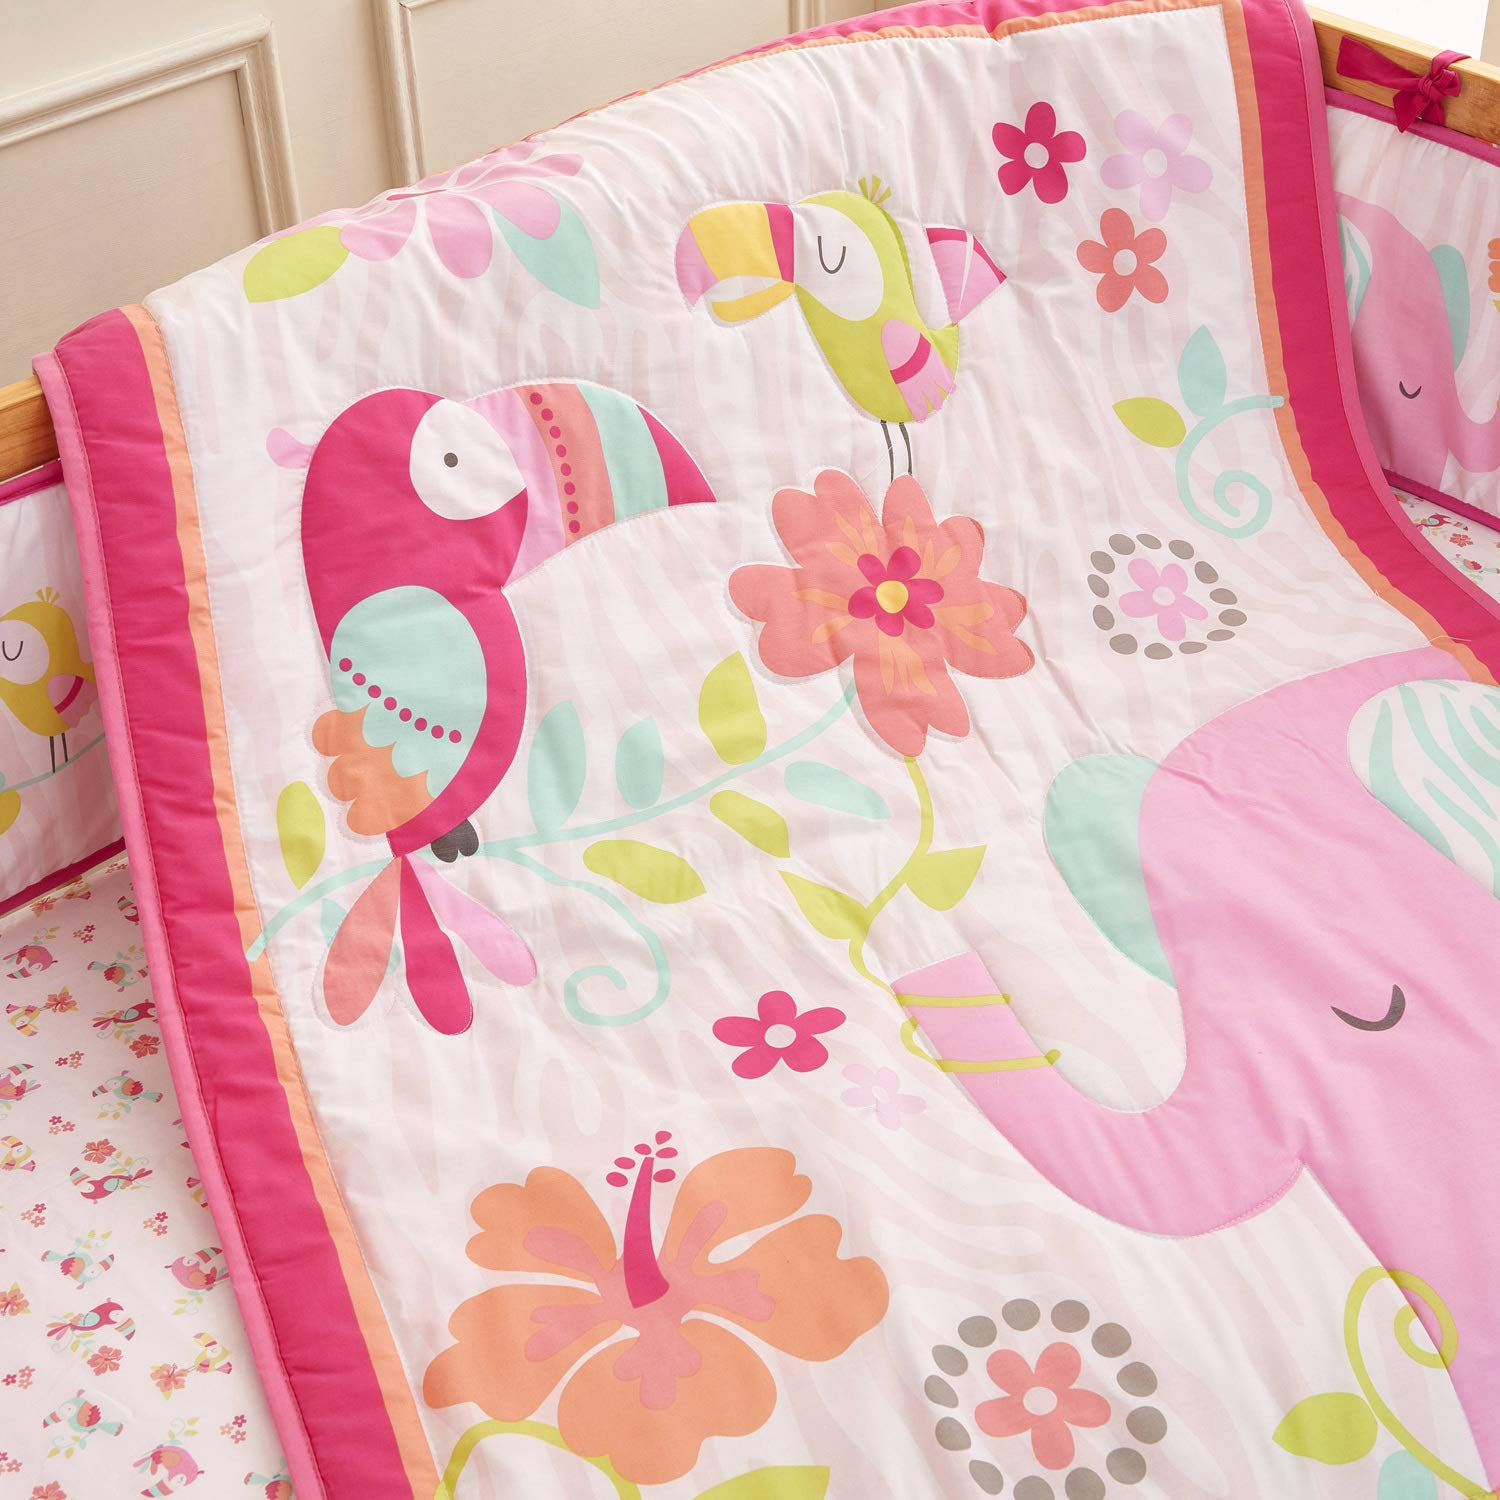 Wowelife Elephant Crib Bedding Sets for Girls Upgraded Pink Flower Birds 9 Piece Elephant Nursery Bedding for Baby Cotton with Bumpers and Diaper Stacker